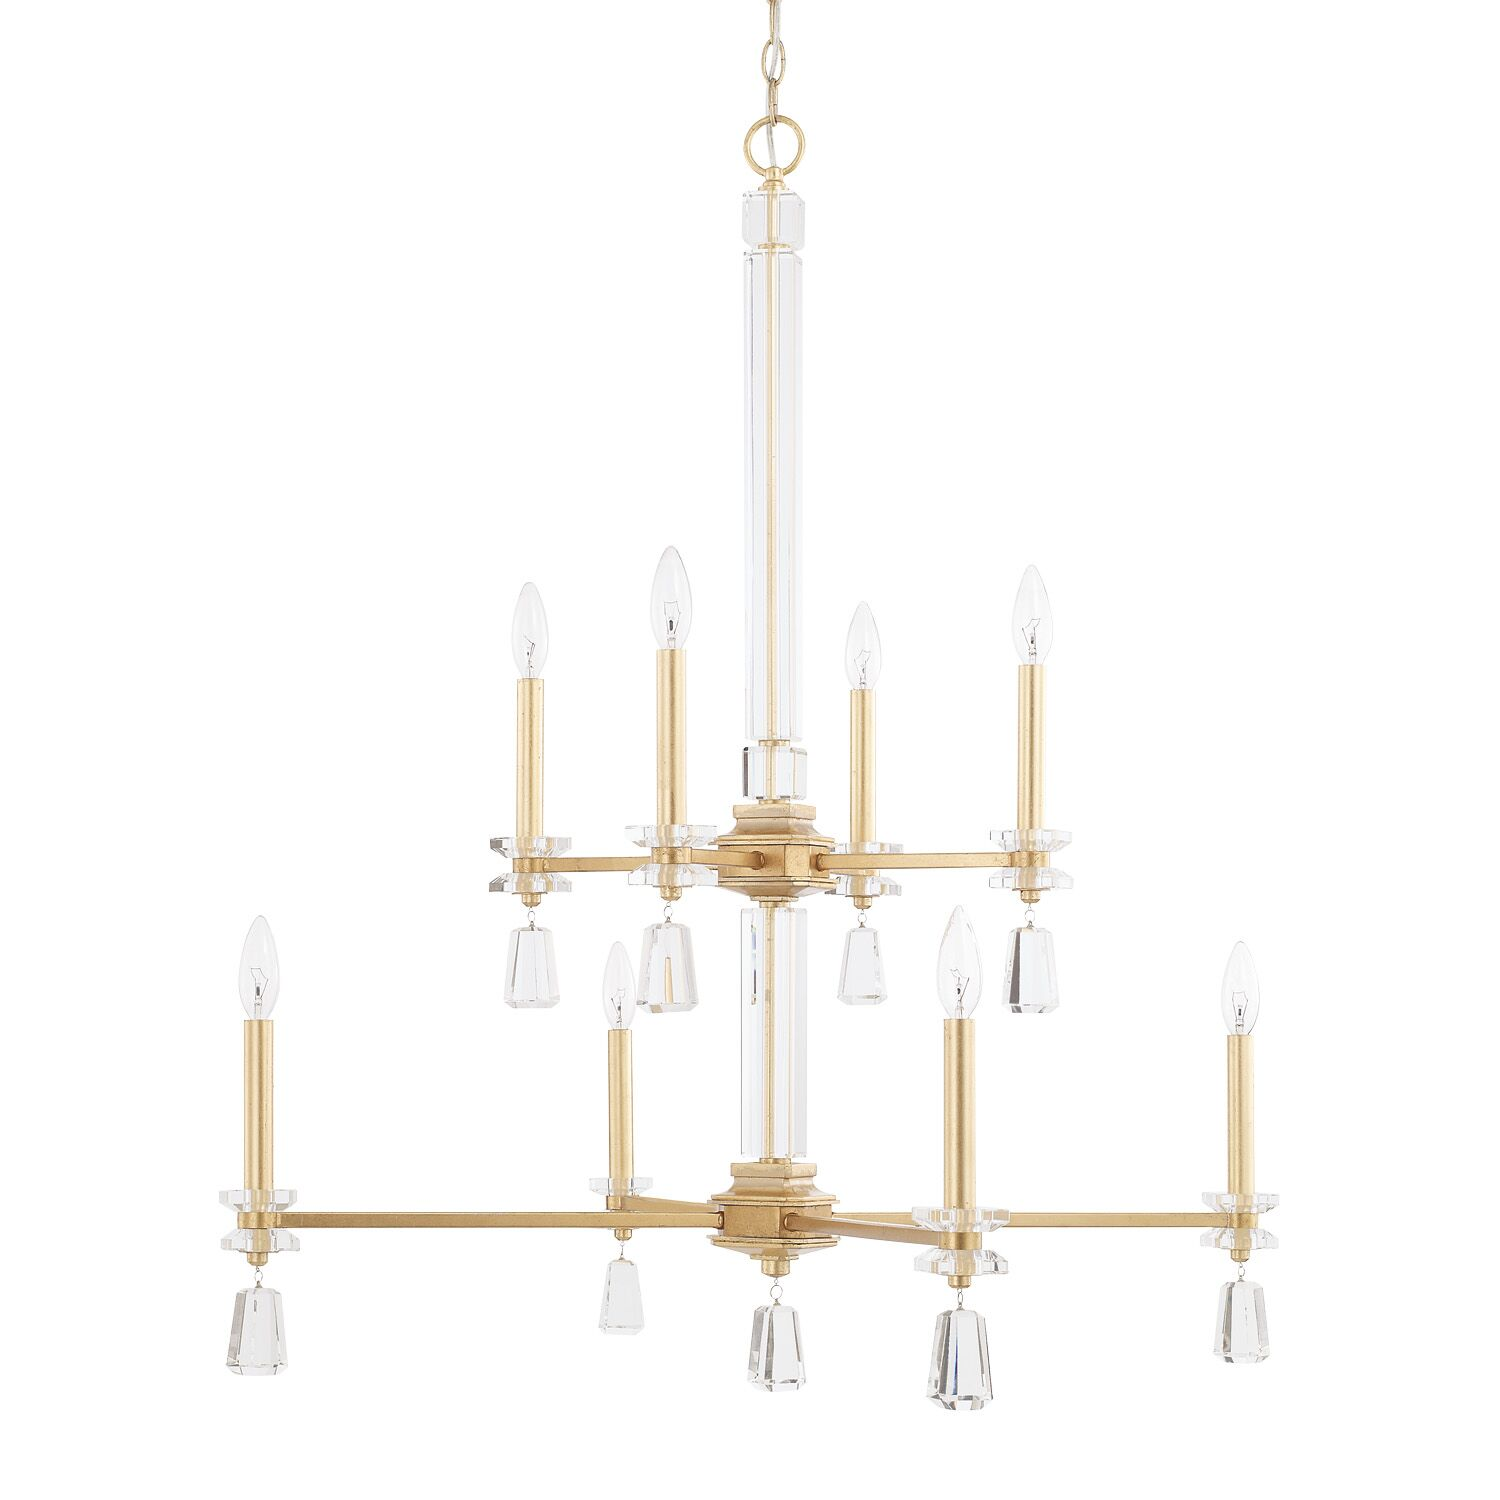 Tera 8-Light Candle Style Chandelier